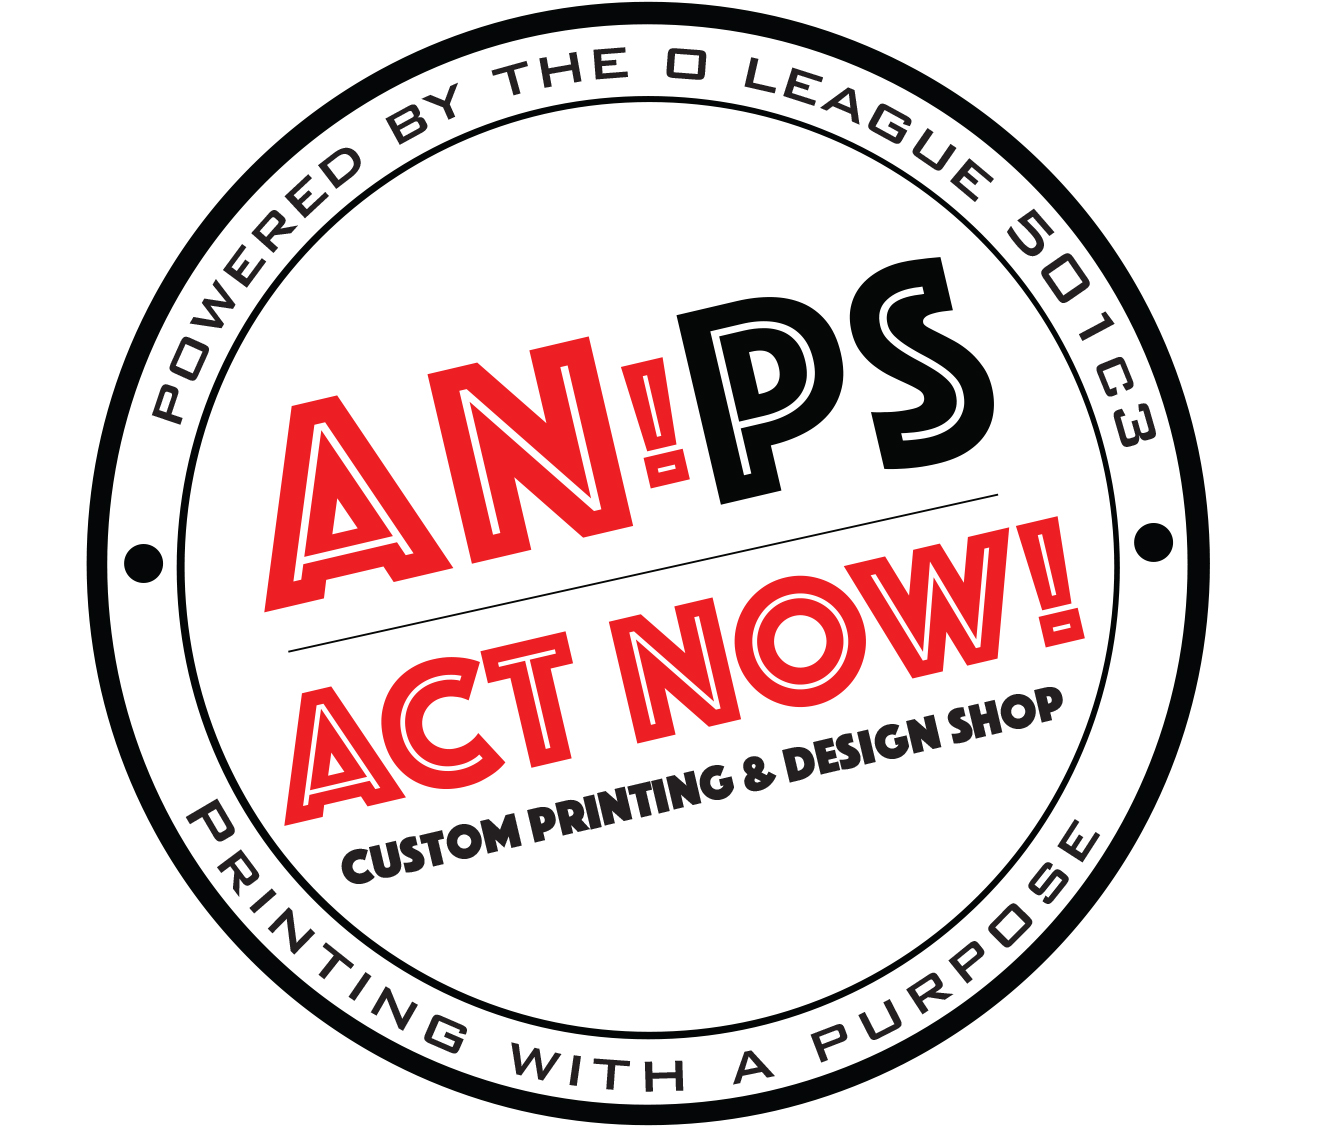 ACT NOW! Print Shop